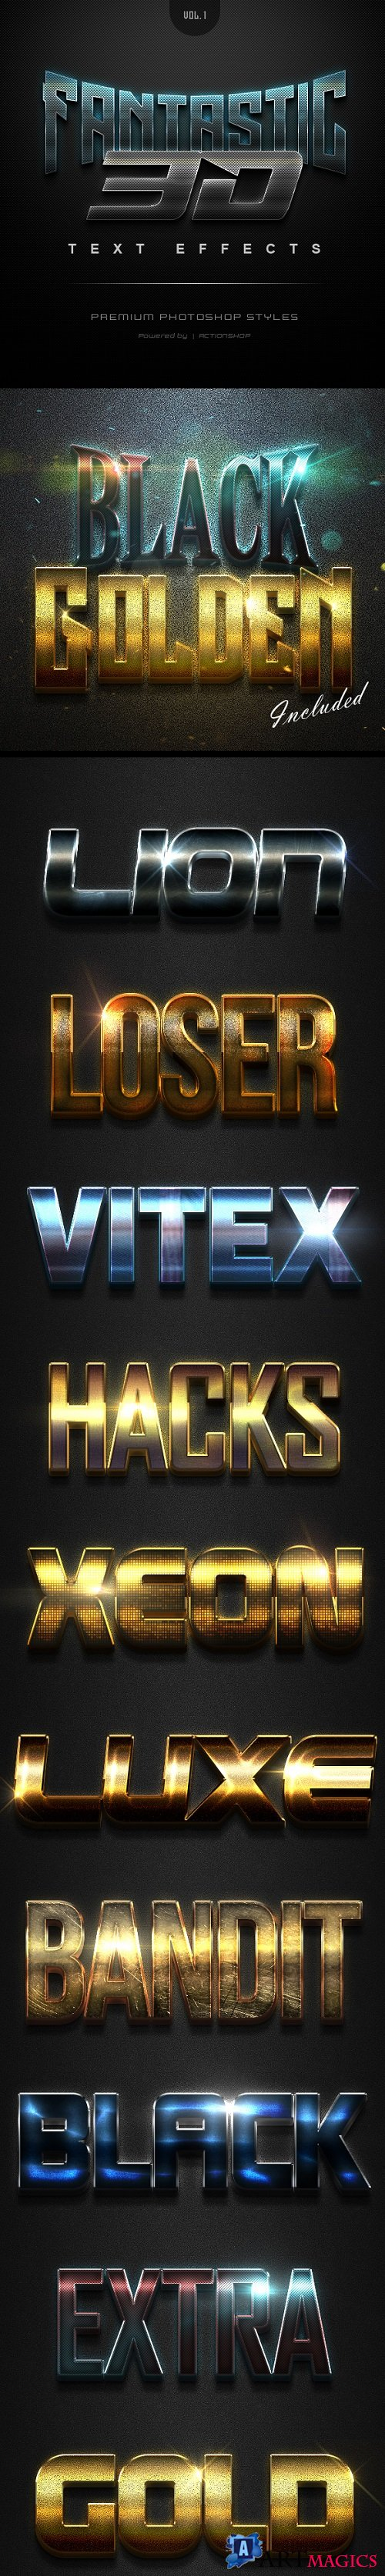 Fantastic 3D Text Effects Vol1 21372969